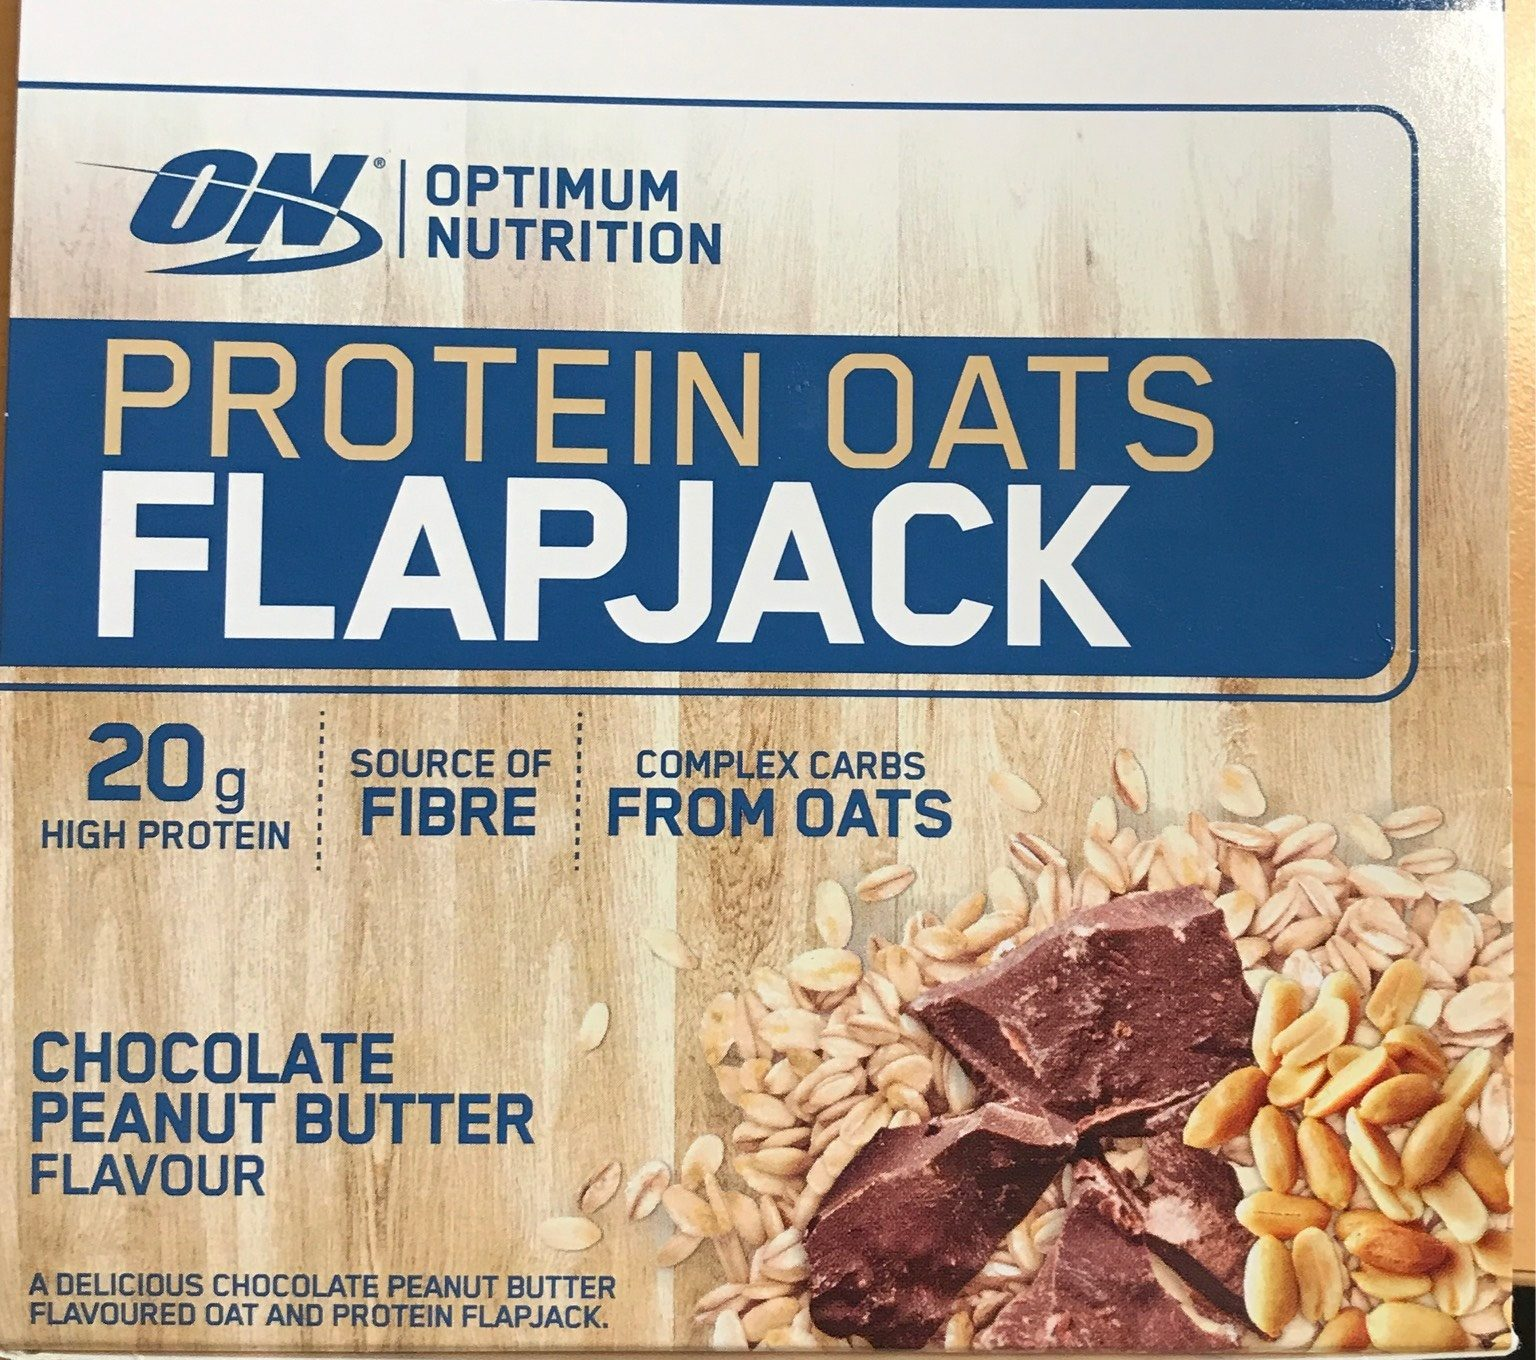 Protein Oats Flapjack - Product